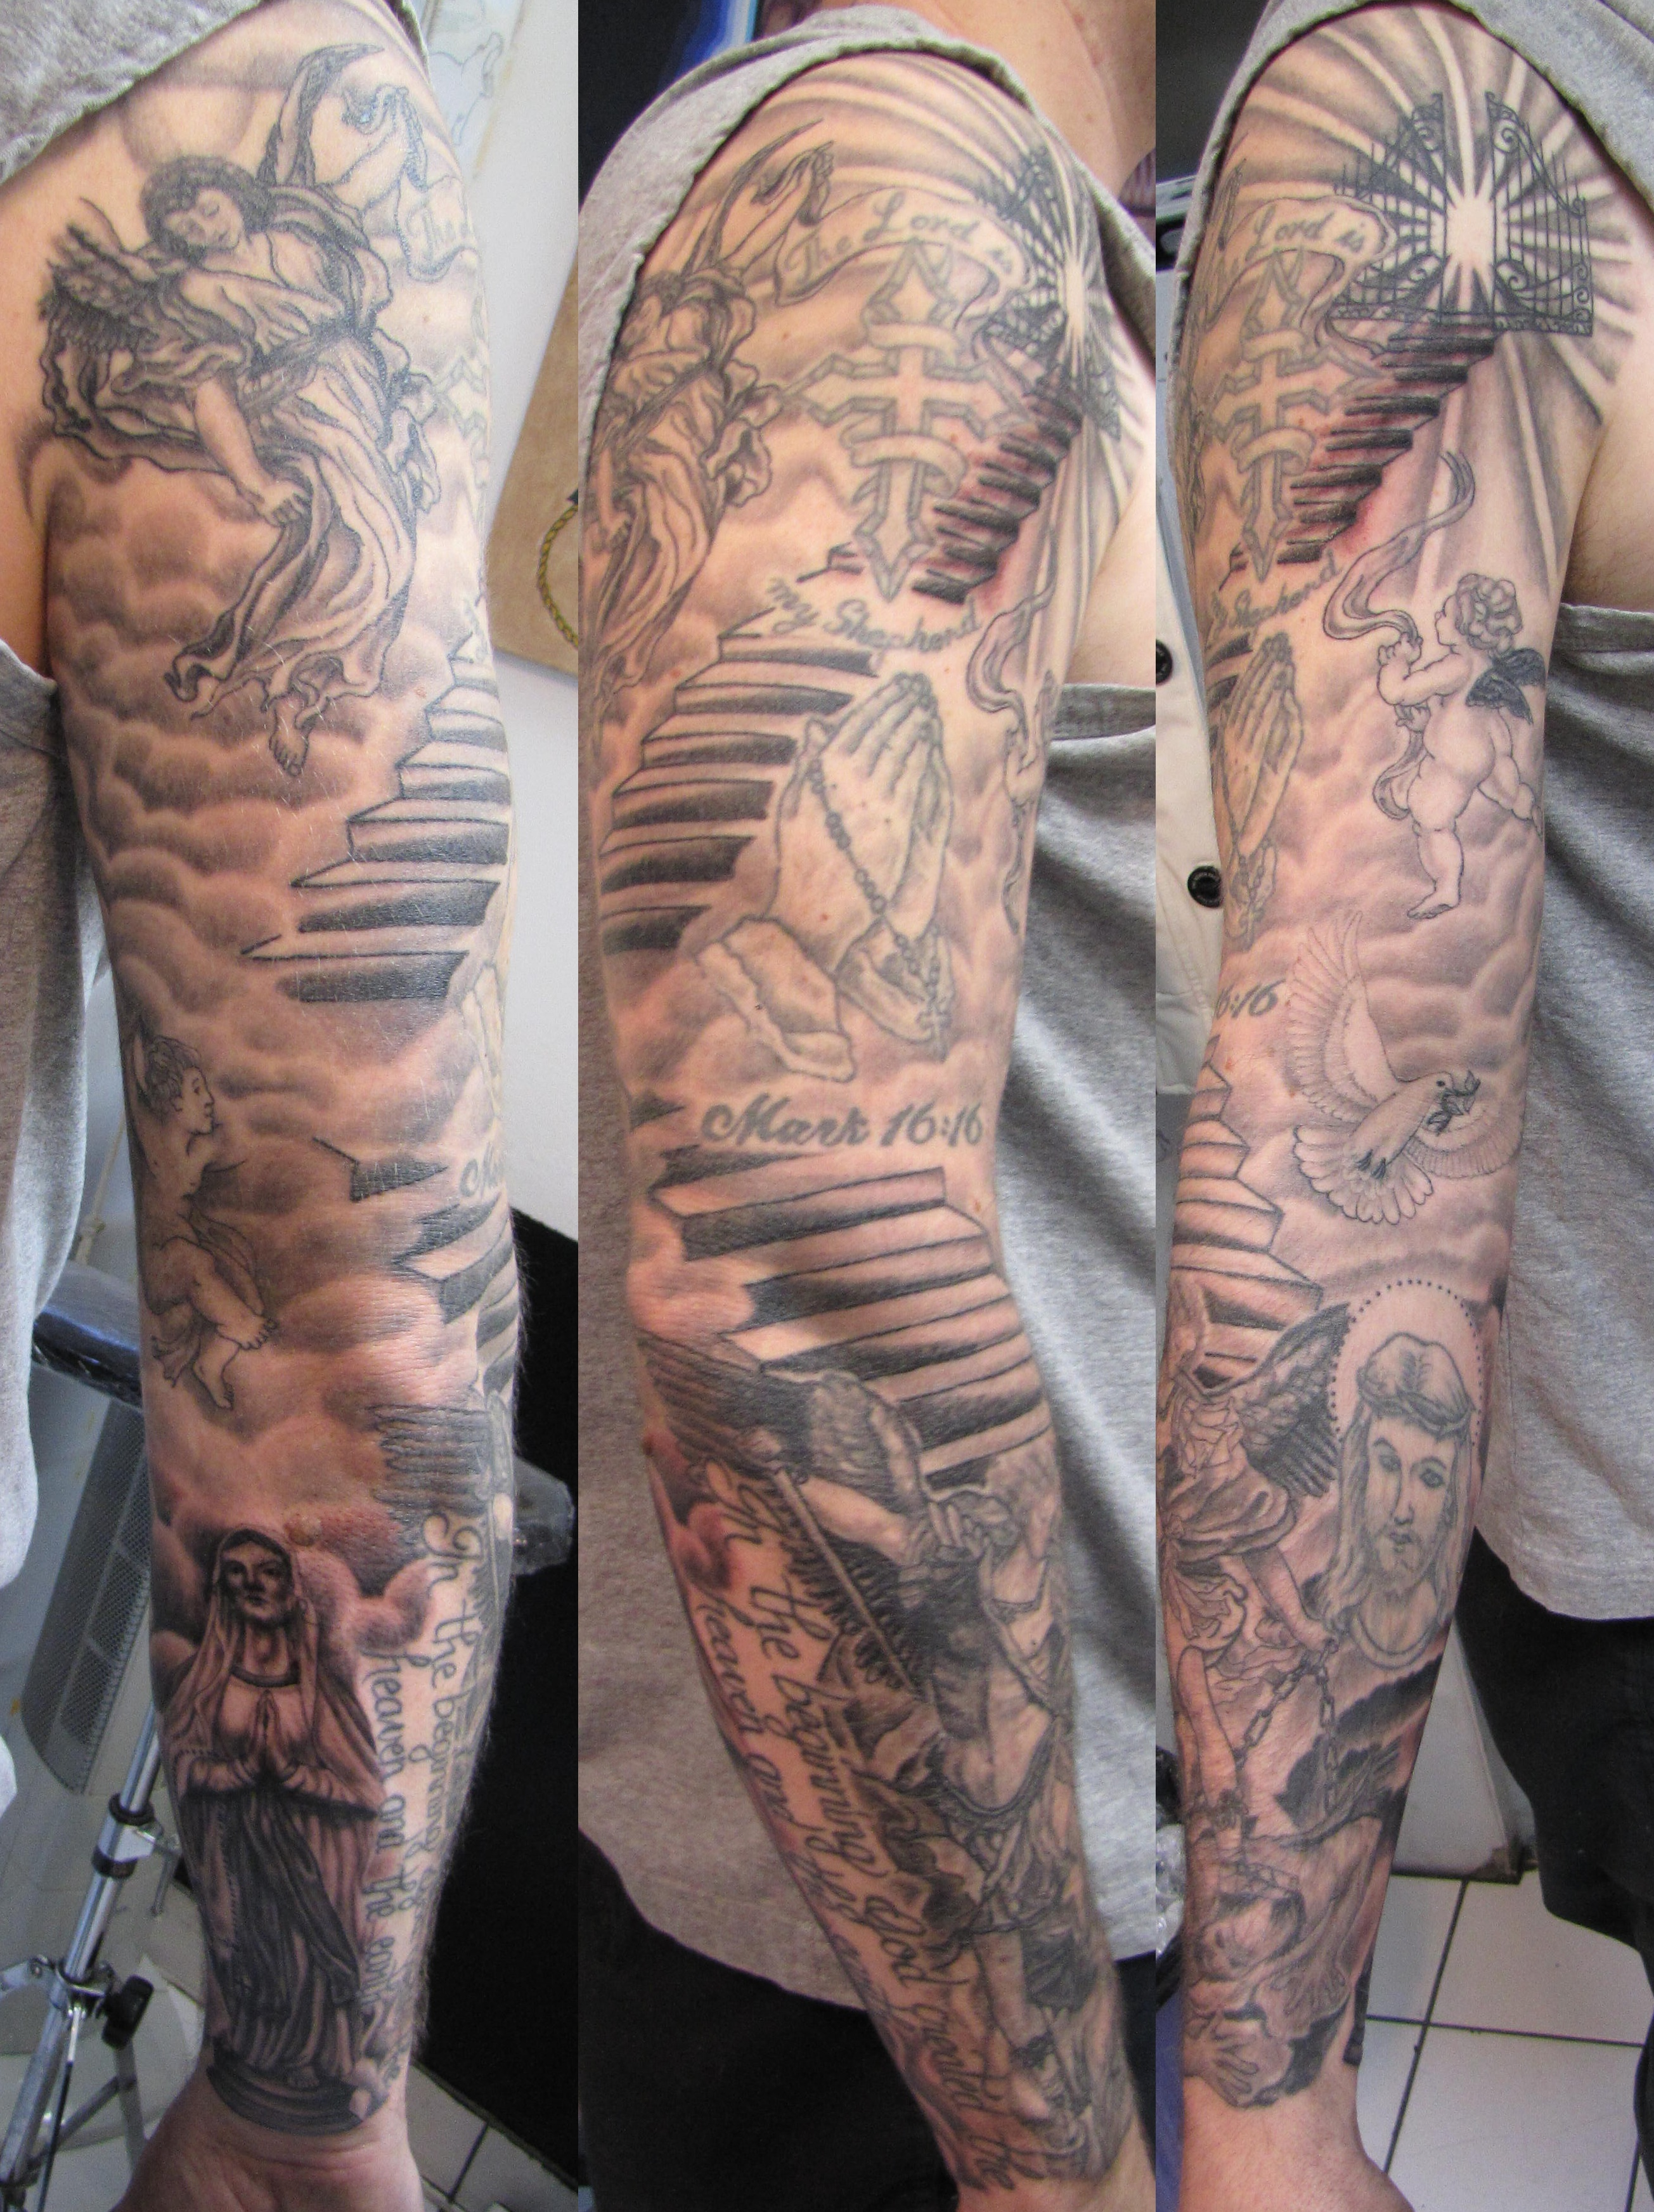 Tattoo Sleeve Ideas For Men Pictures: 26+ Angel Sleeve Tattoos Ideas